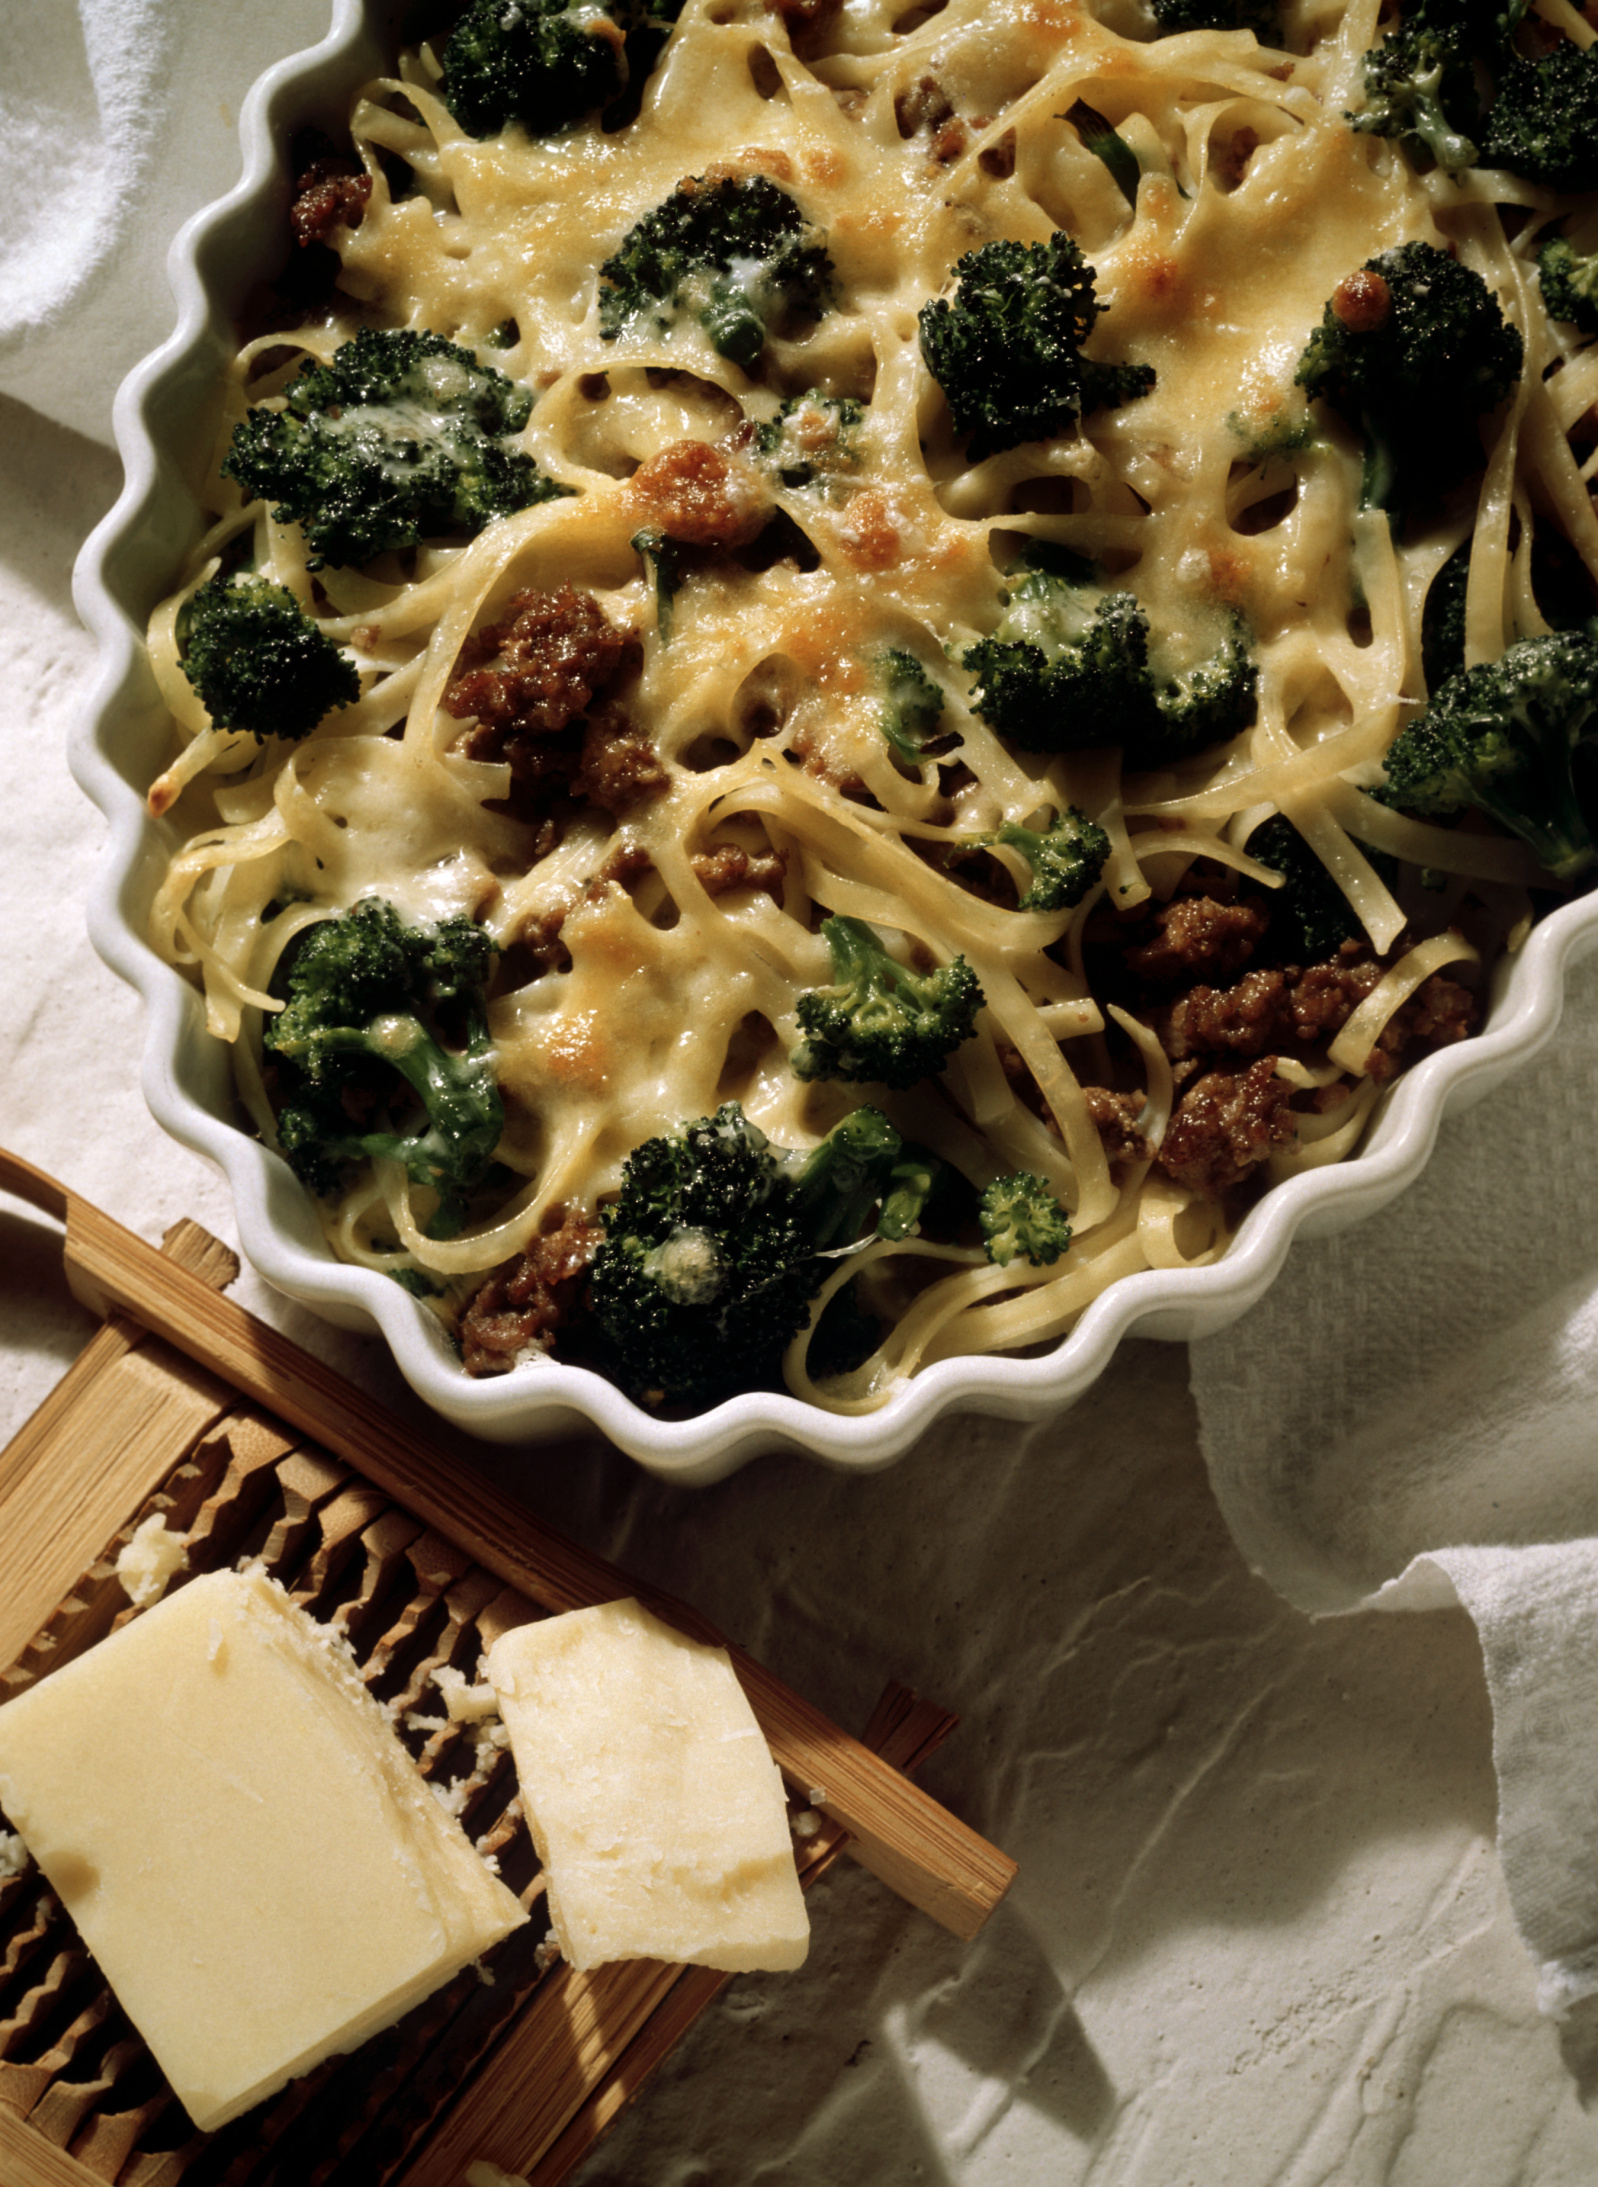 Adding cheesy sauces to broccoli increases its sodium content.